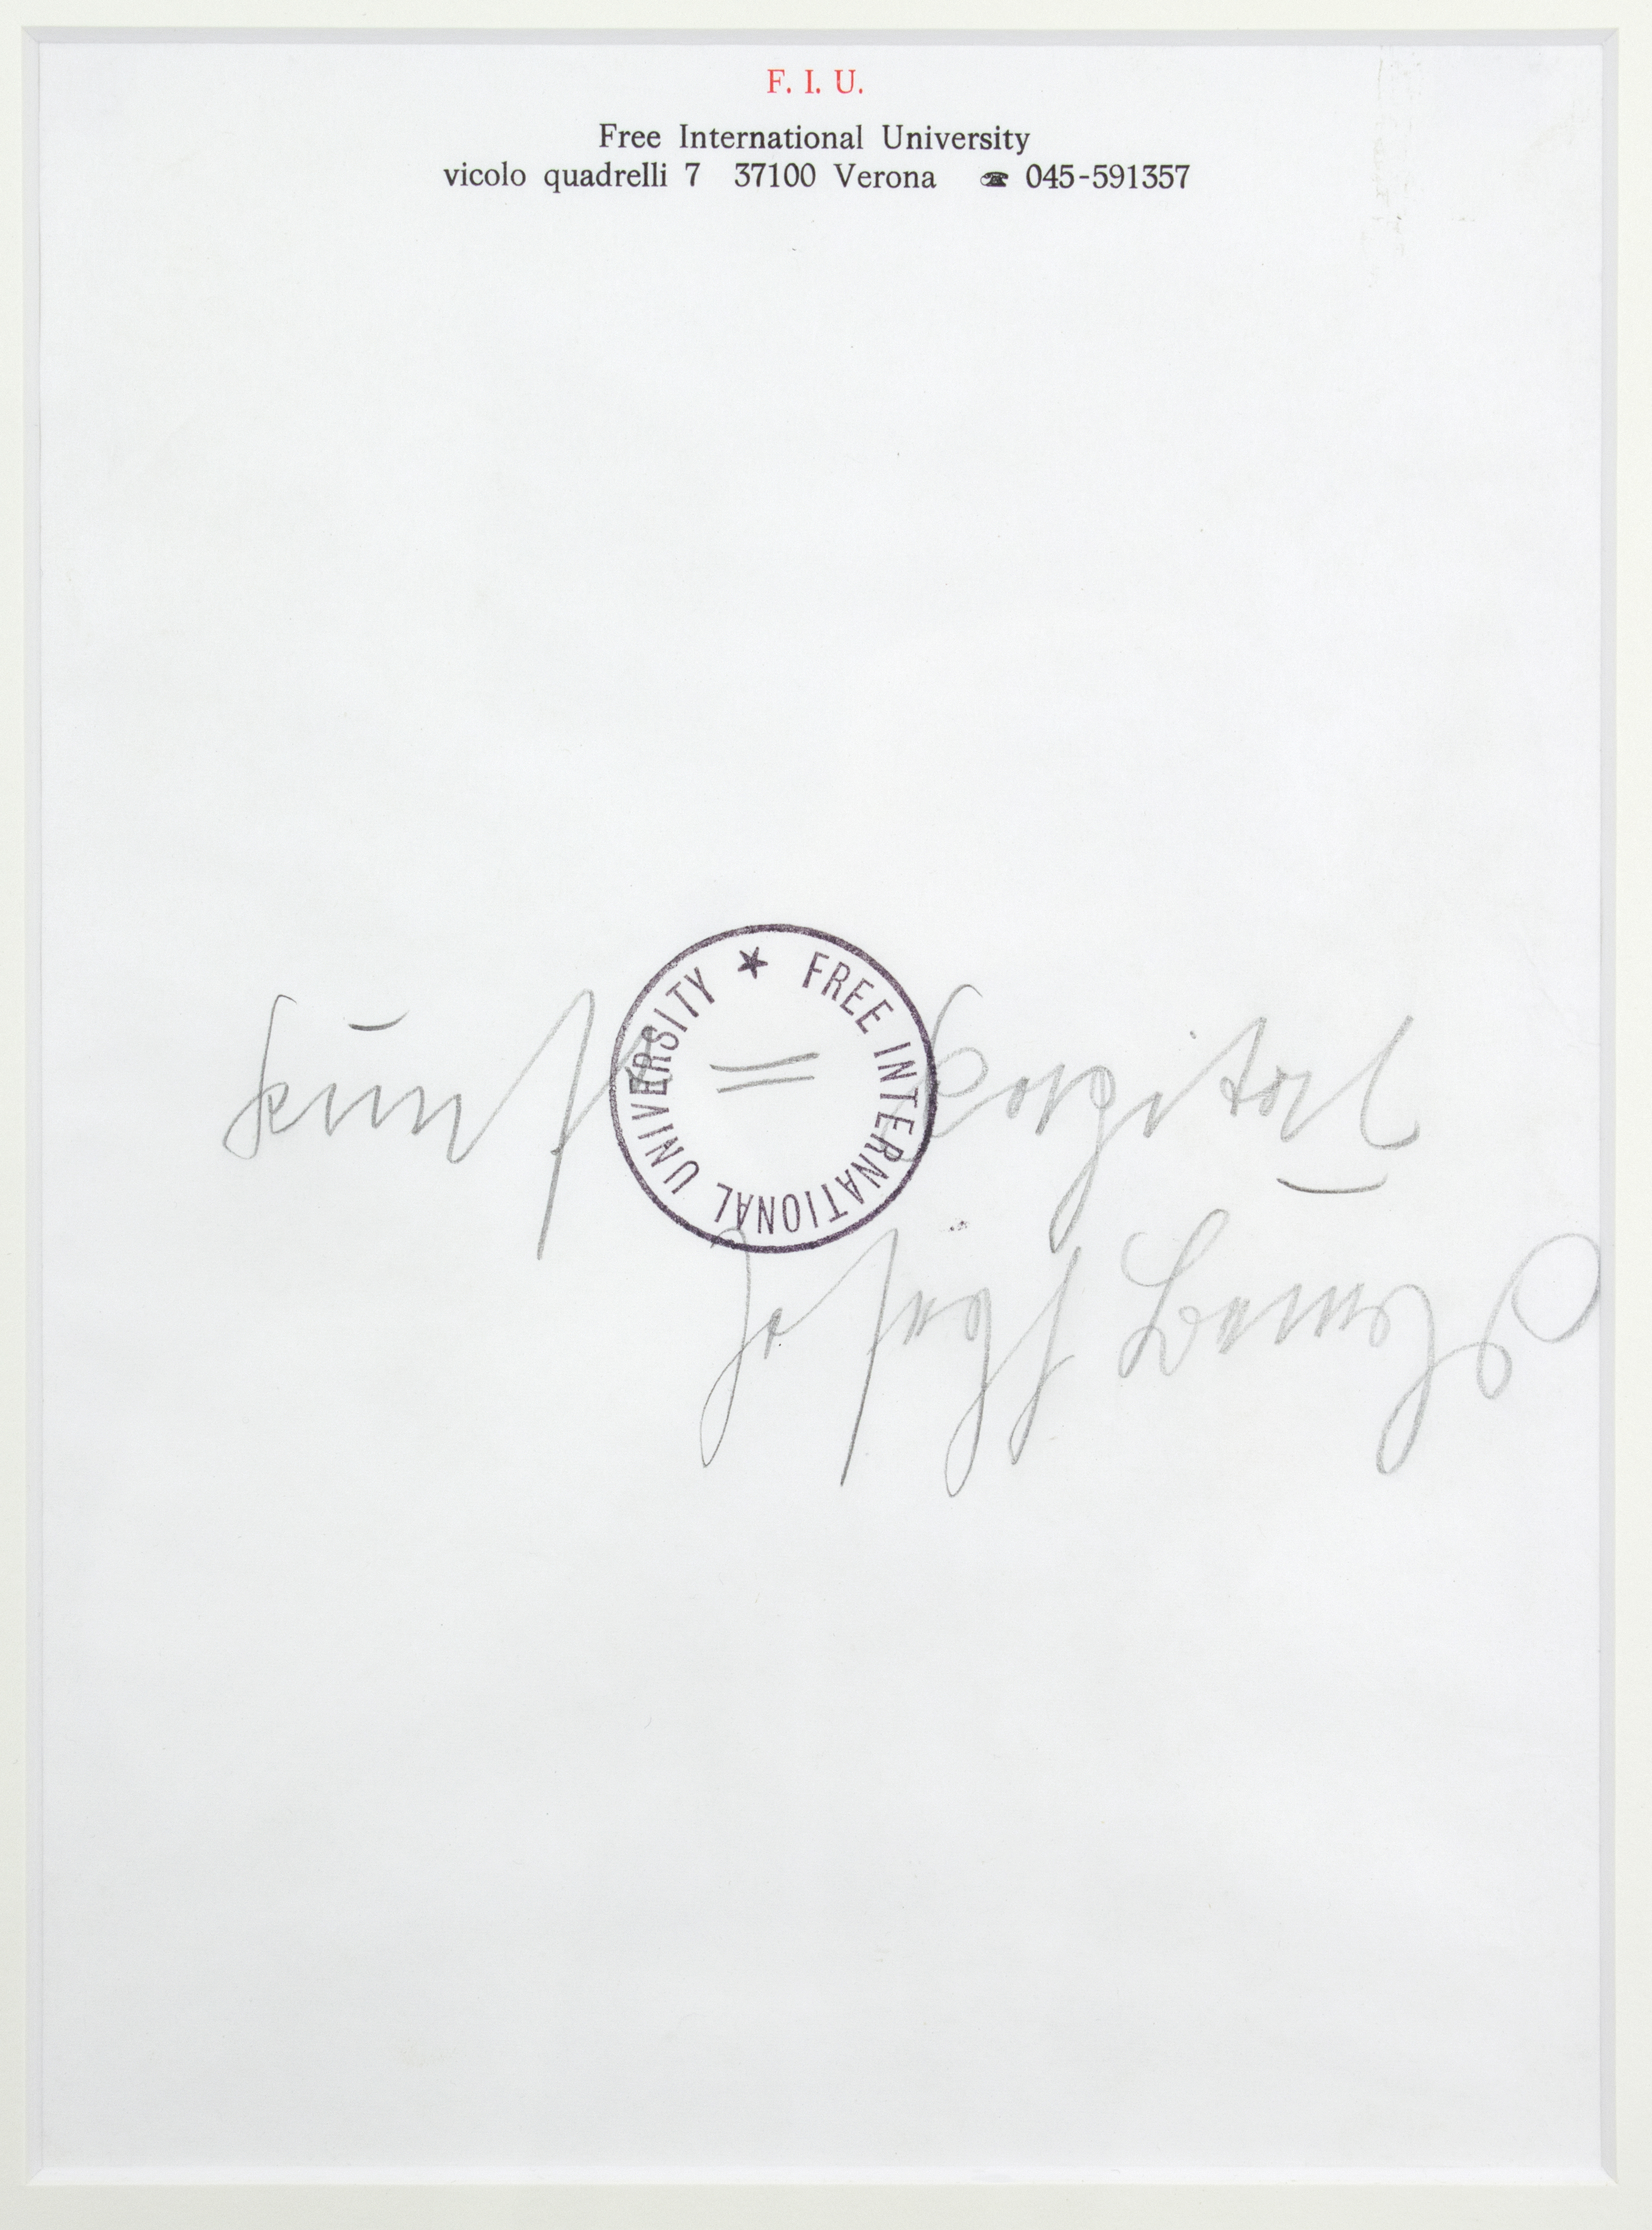 ca 1975, pencil on letter paper, 22 x 30 cm, Provenance: Collection Lucrezia de Domizio Durini Pescara